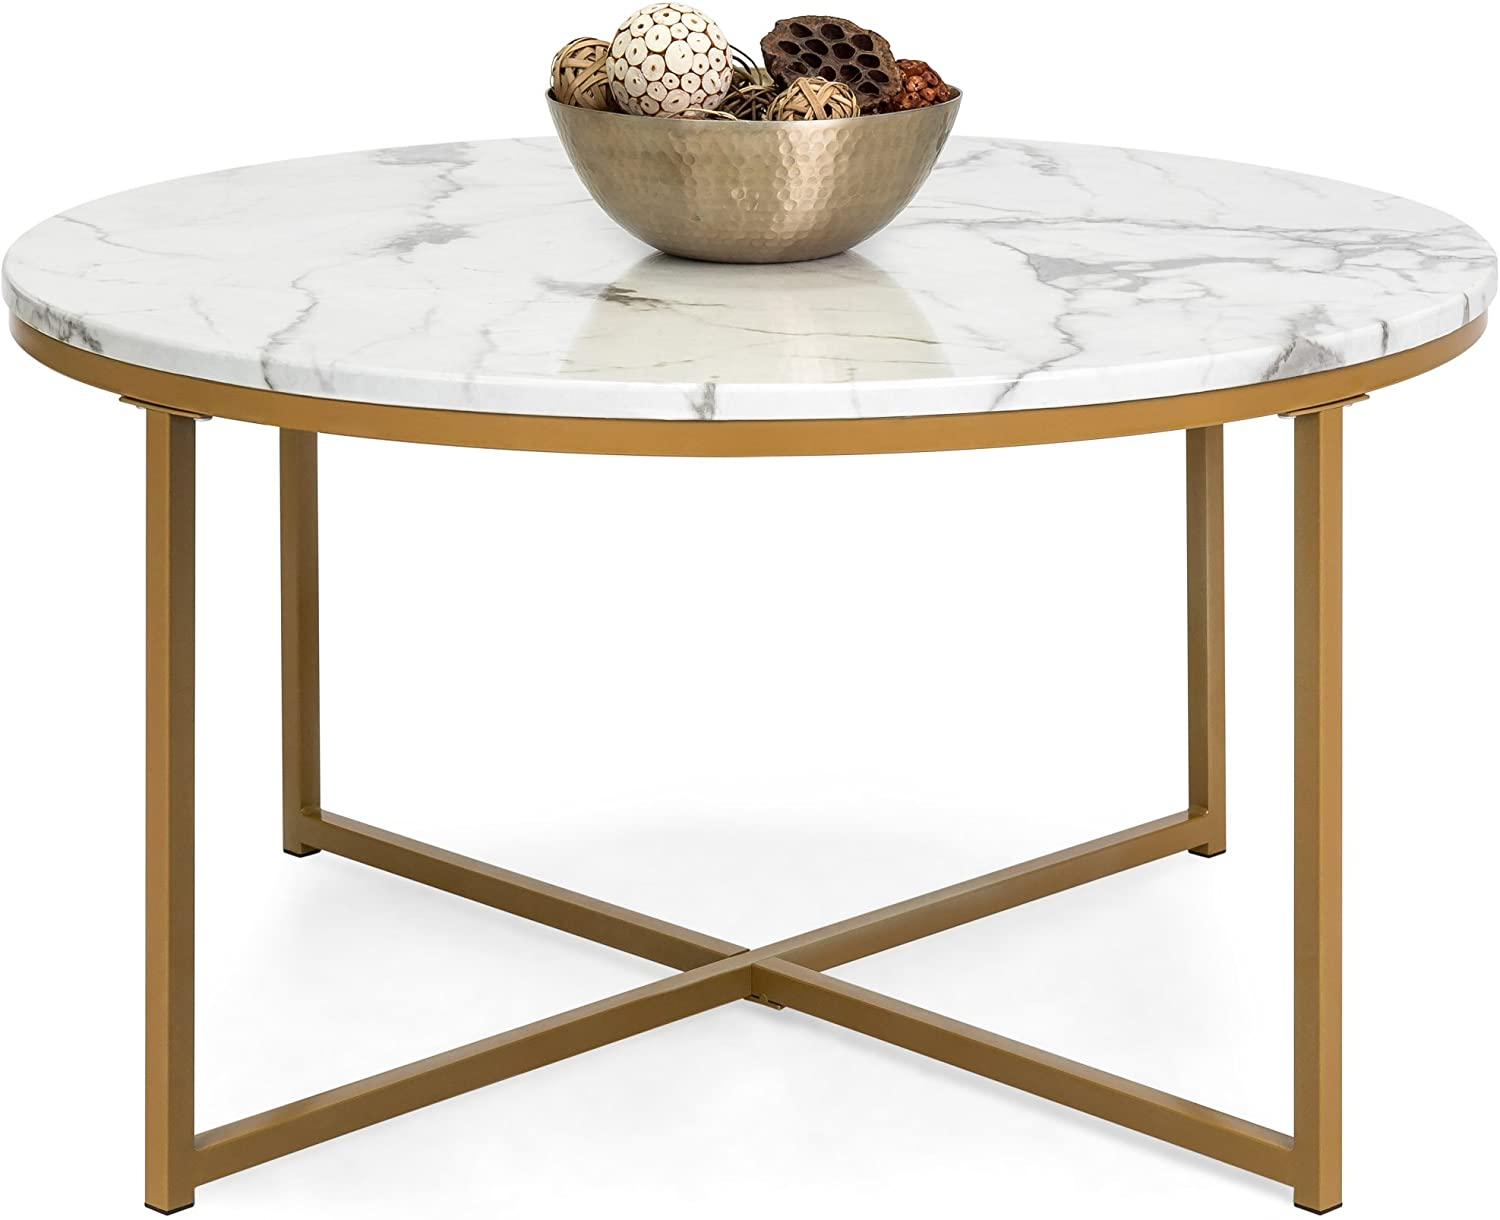 Distressed Wood Cocktail Table